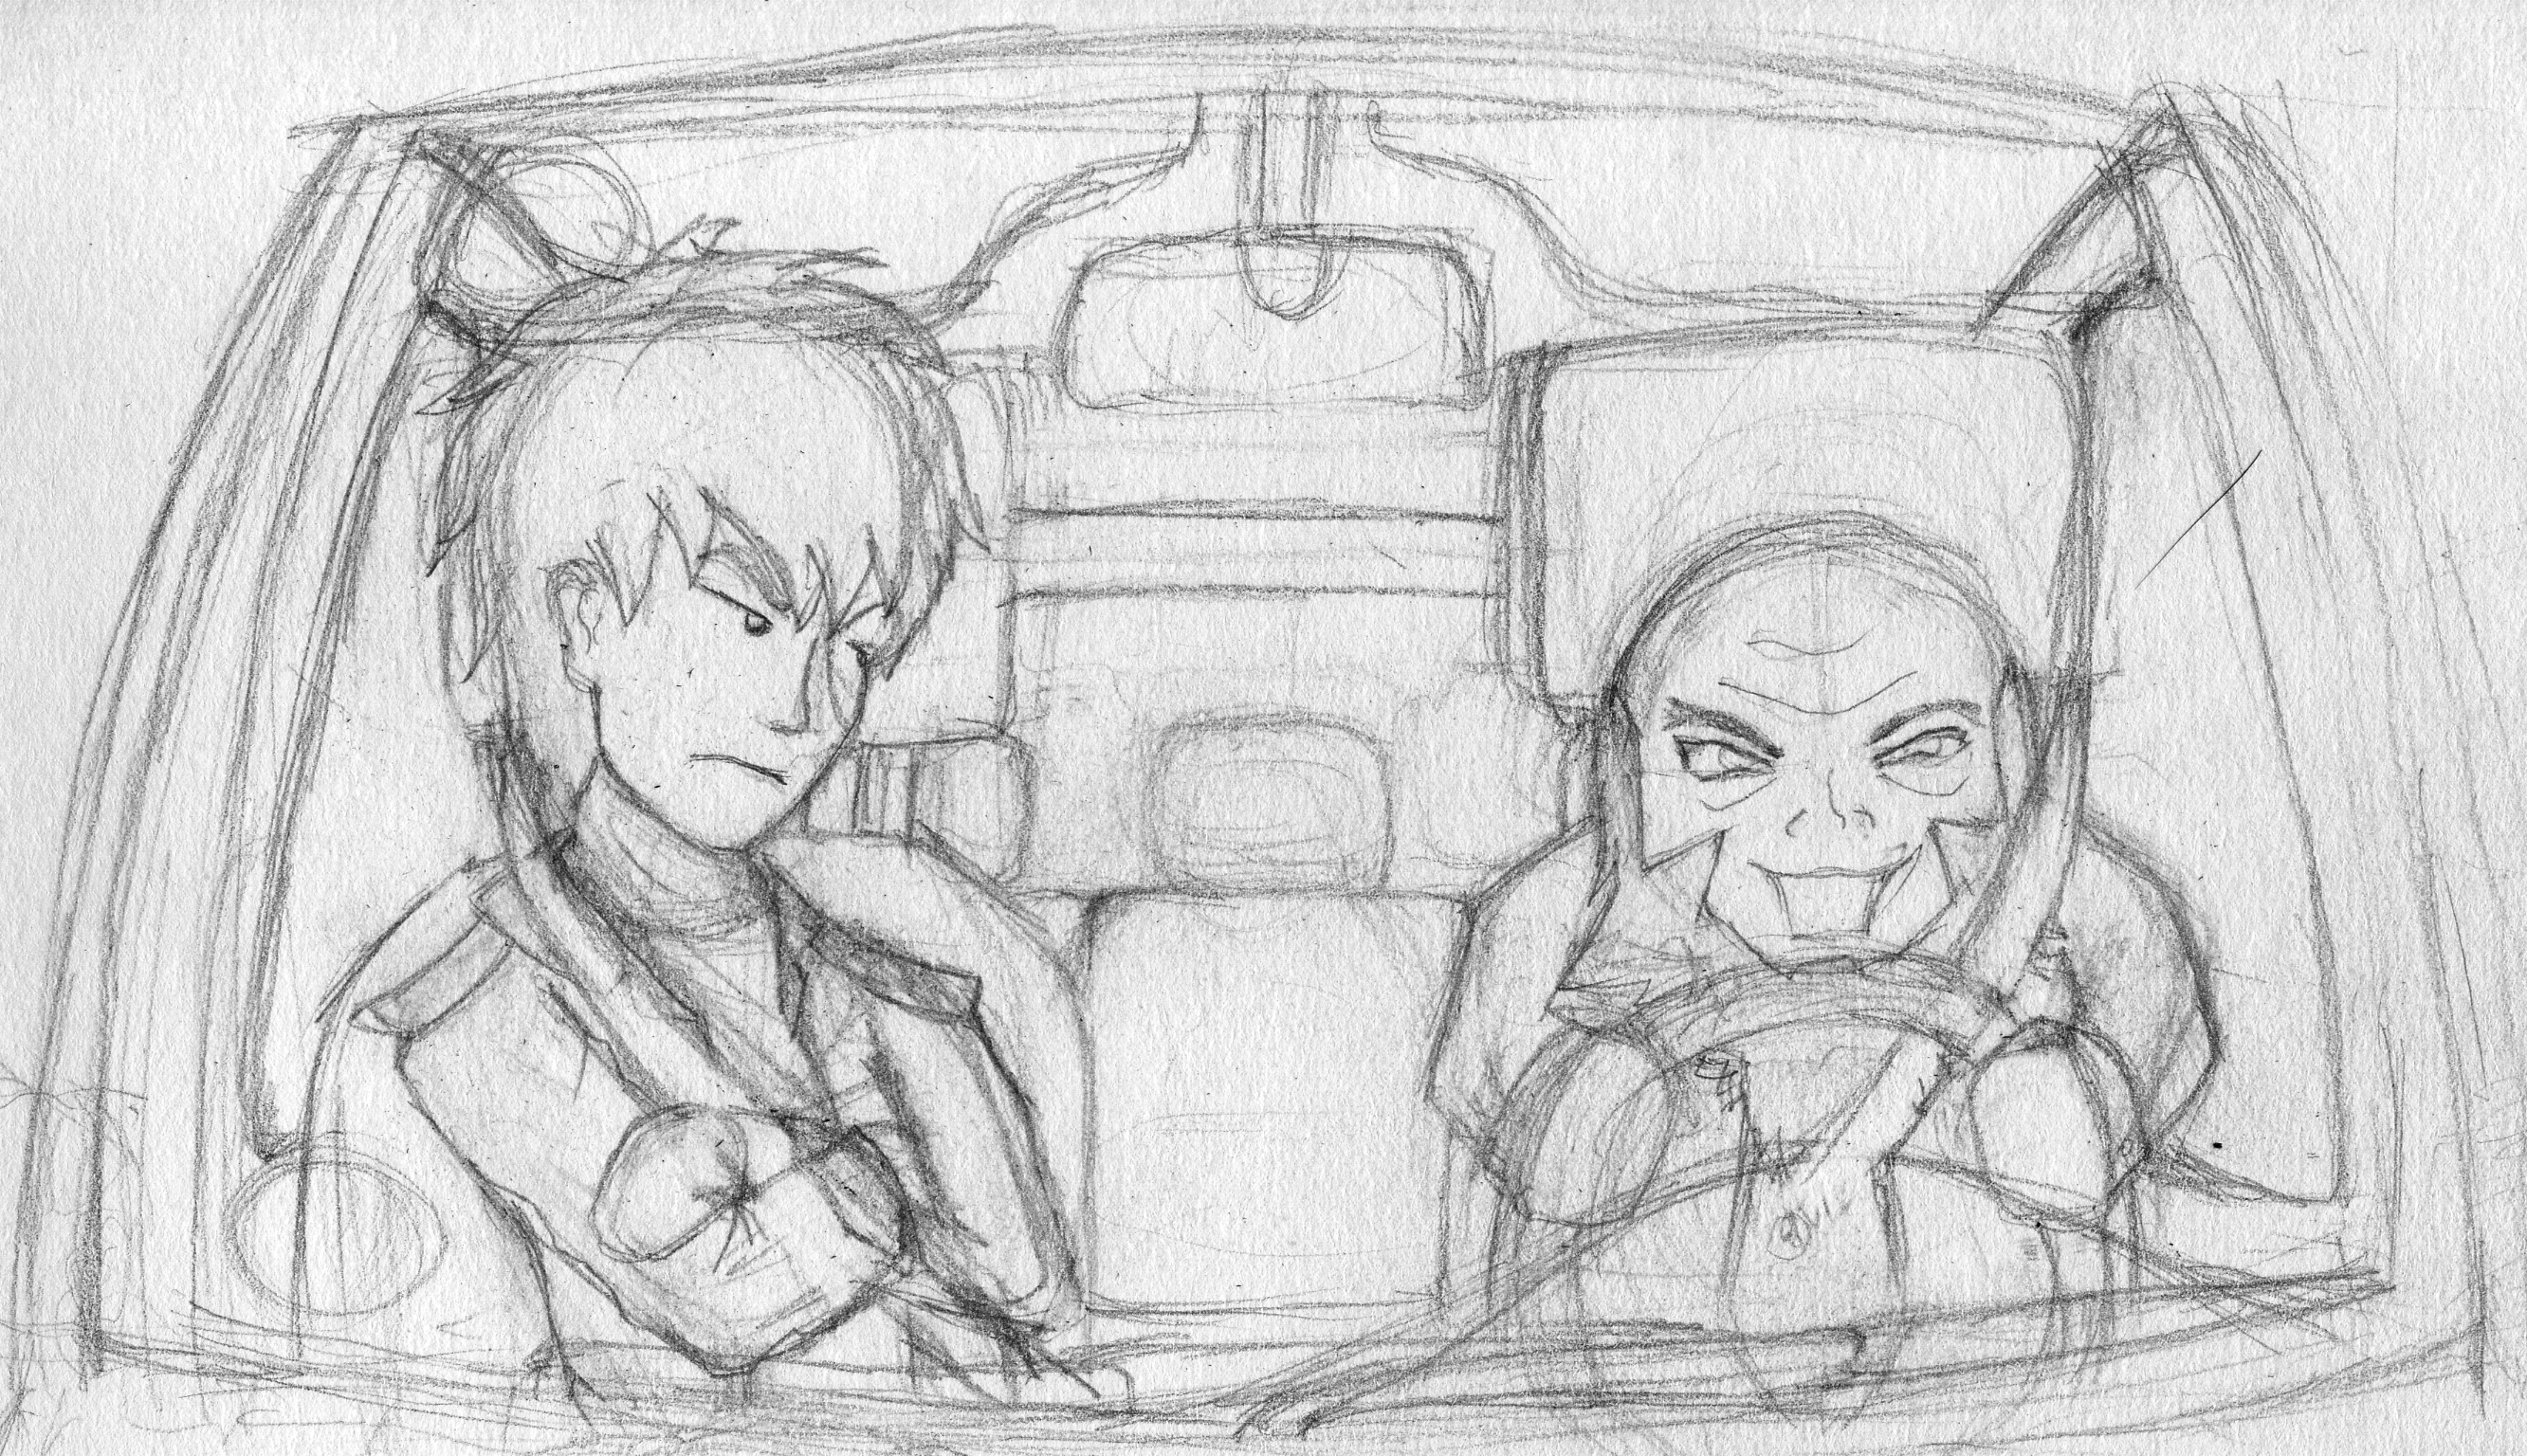 Iroh and Zuko's road trip by storm-of-insanity